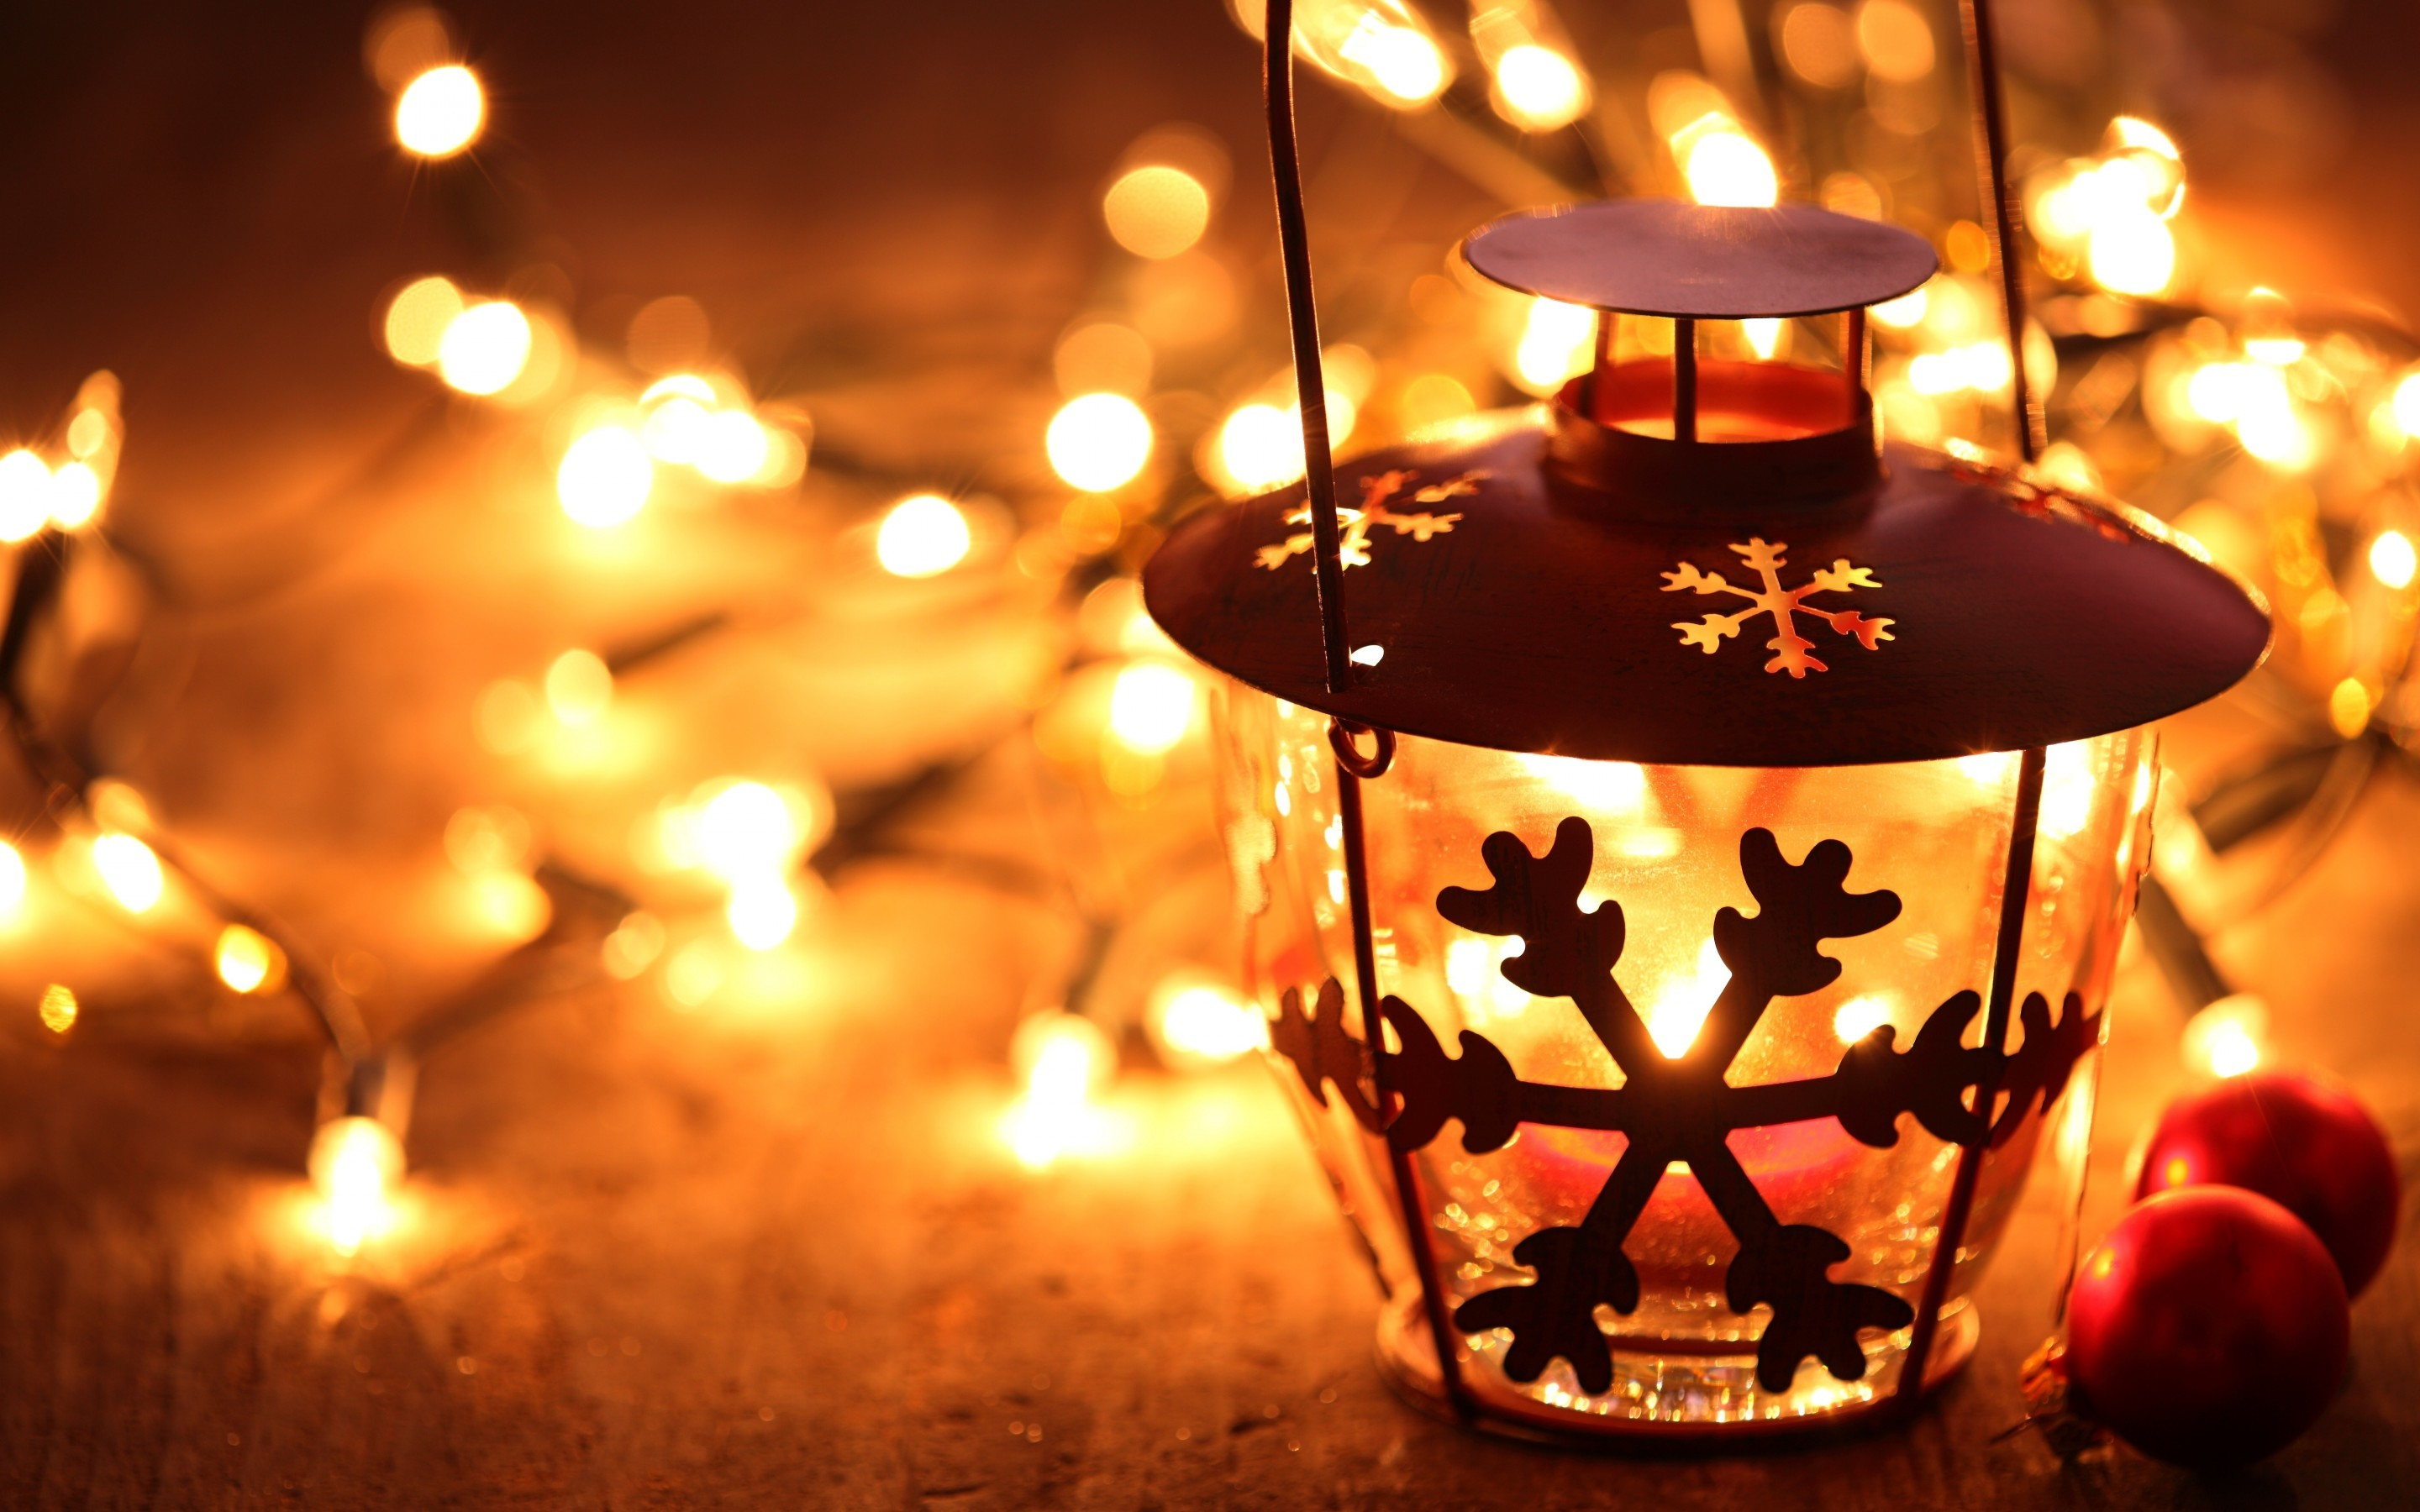 2880x1800 snowflake lantern on wooden floor with yellow candle light